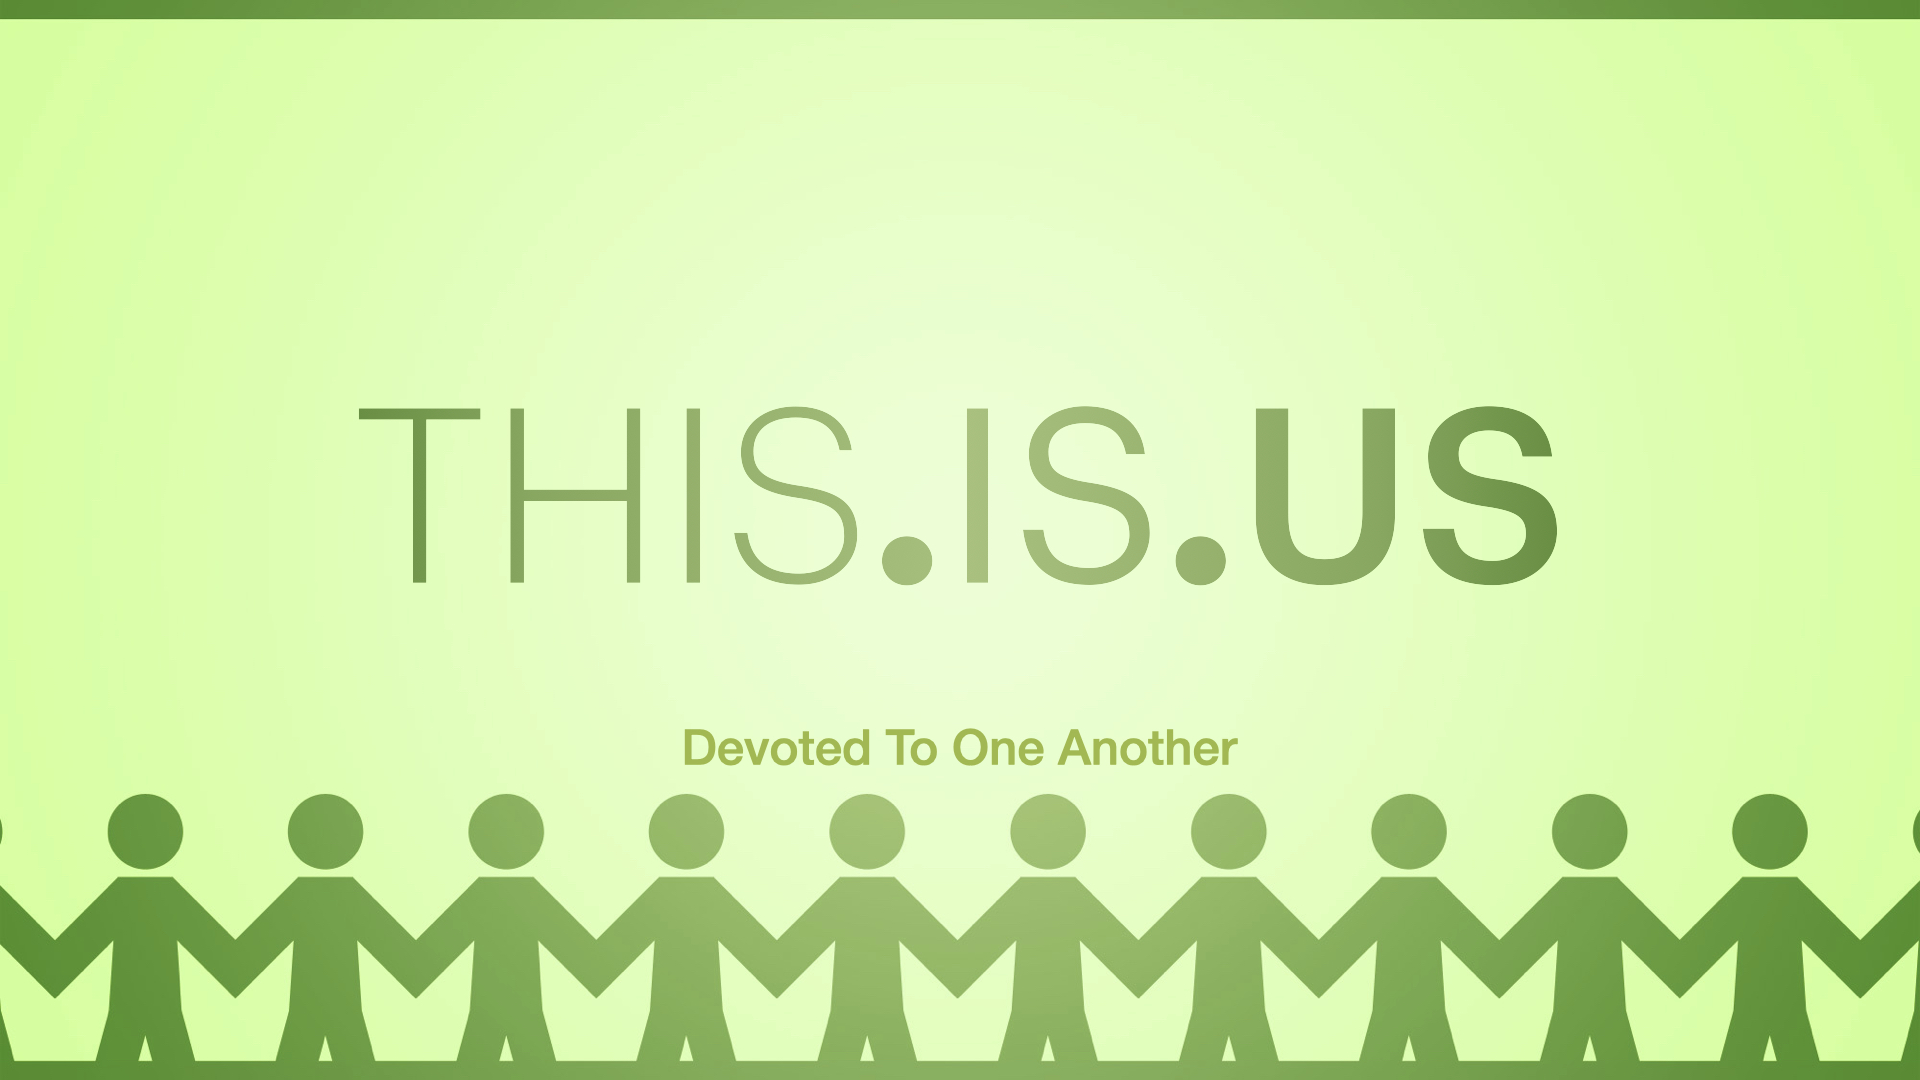 THISISUS  Devoted To One Another